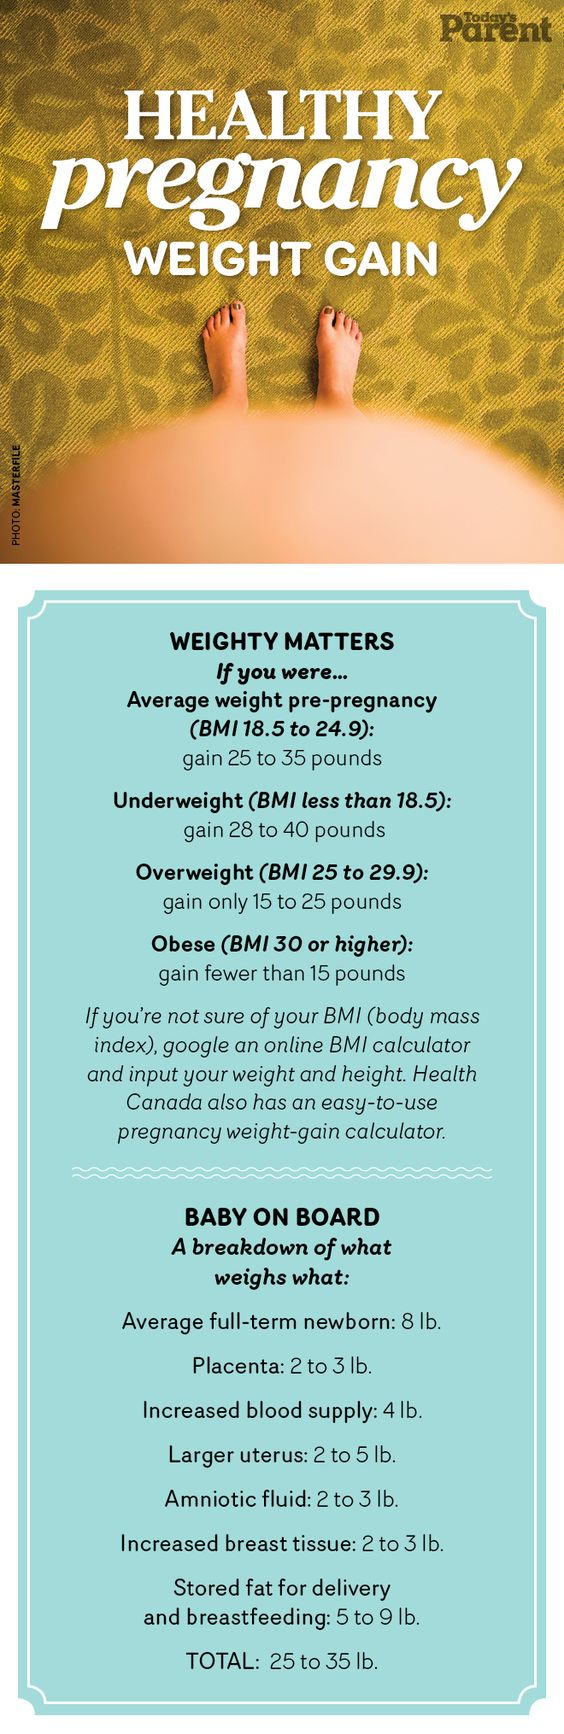 Weight gain pregnancy chart best pounds ill ever gain pinterest weight gain pregnancy chart best pounds ill ever gain pinterest pregnancy chart weight gain and pregnancy nvjuhfo Choice Image